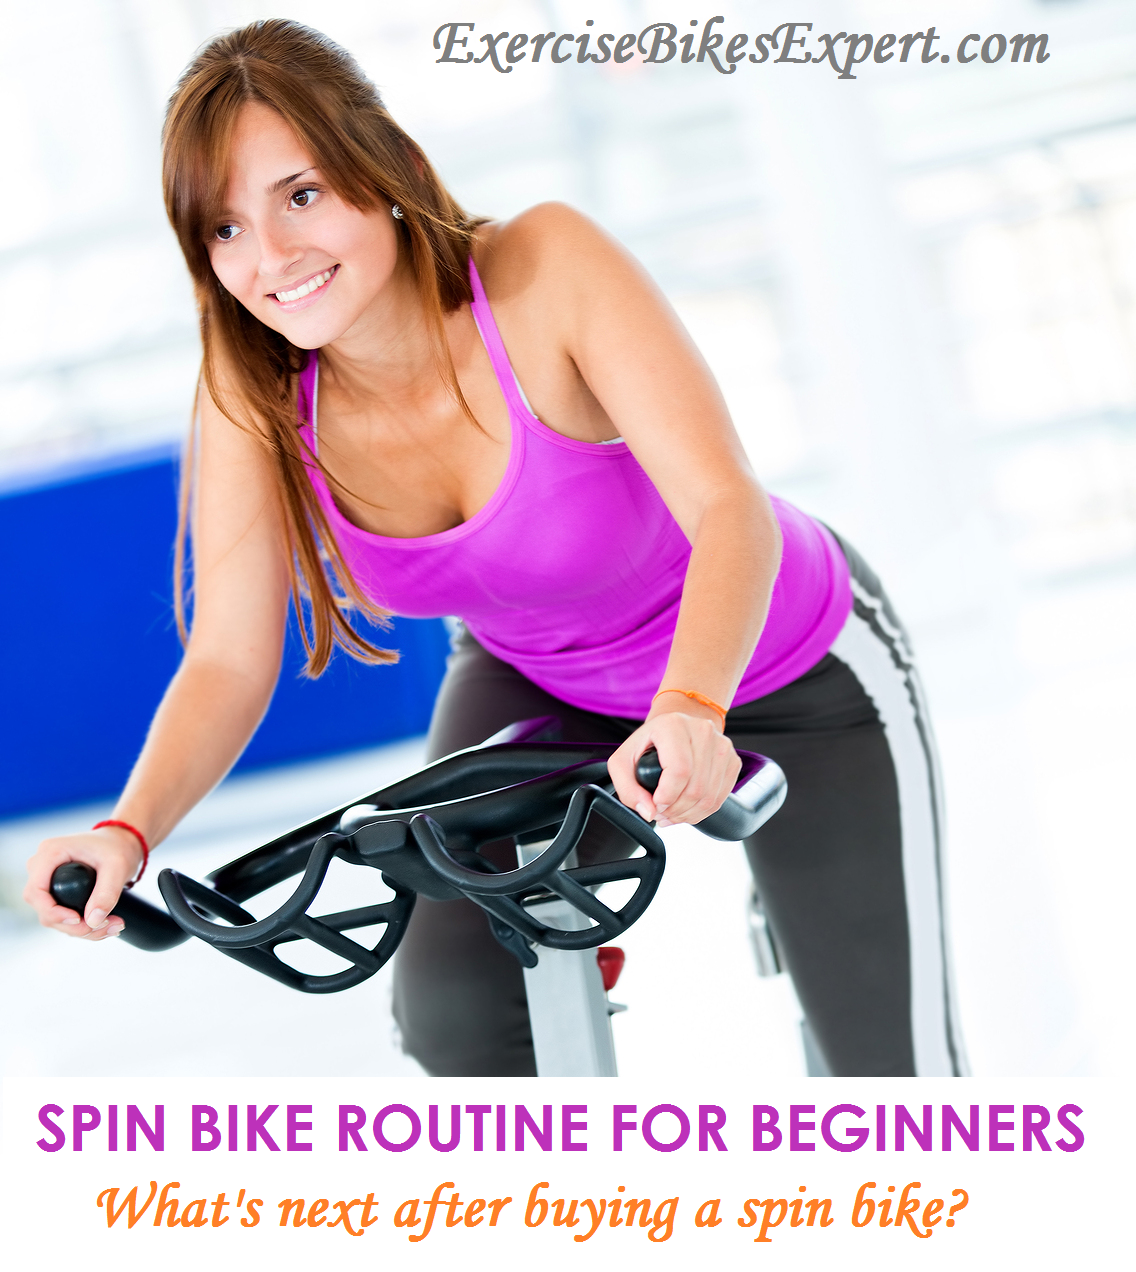 Home Exercise Equipment For Beginners: Spin Bike Routine For Beginners: What's Next After Buying